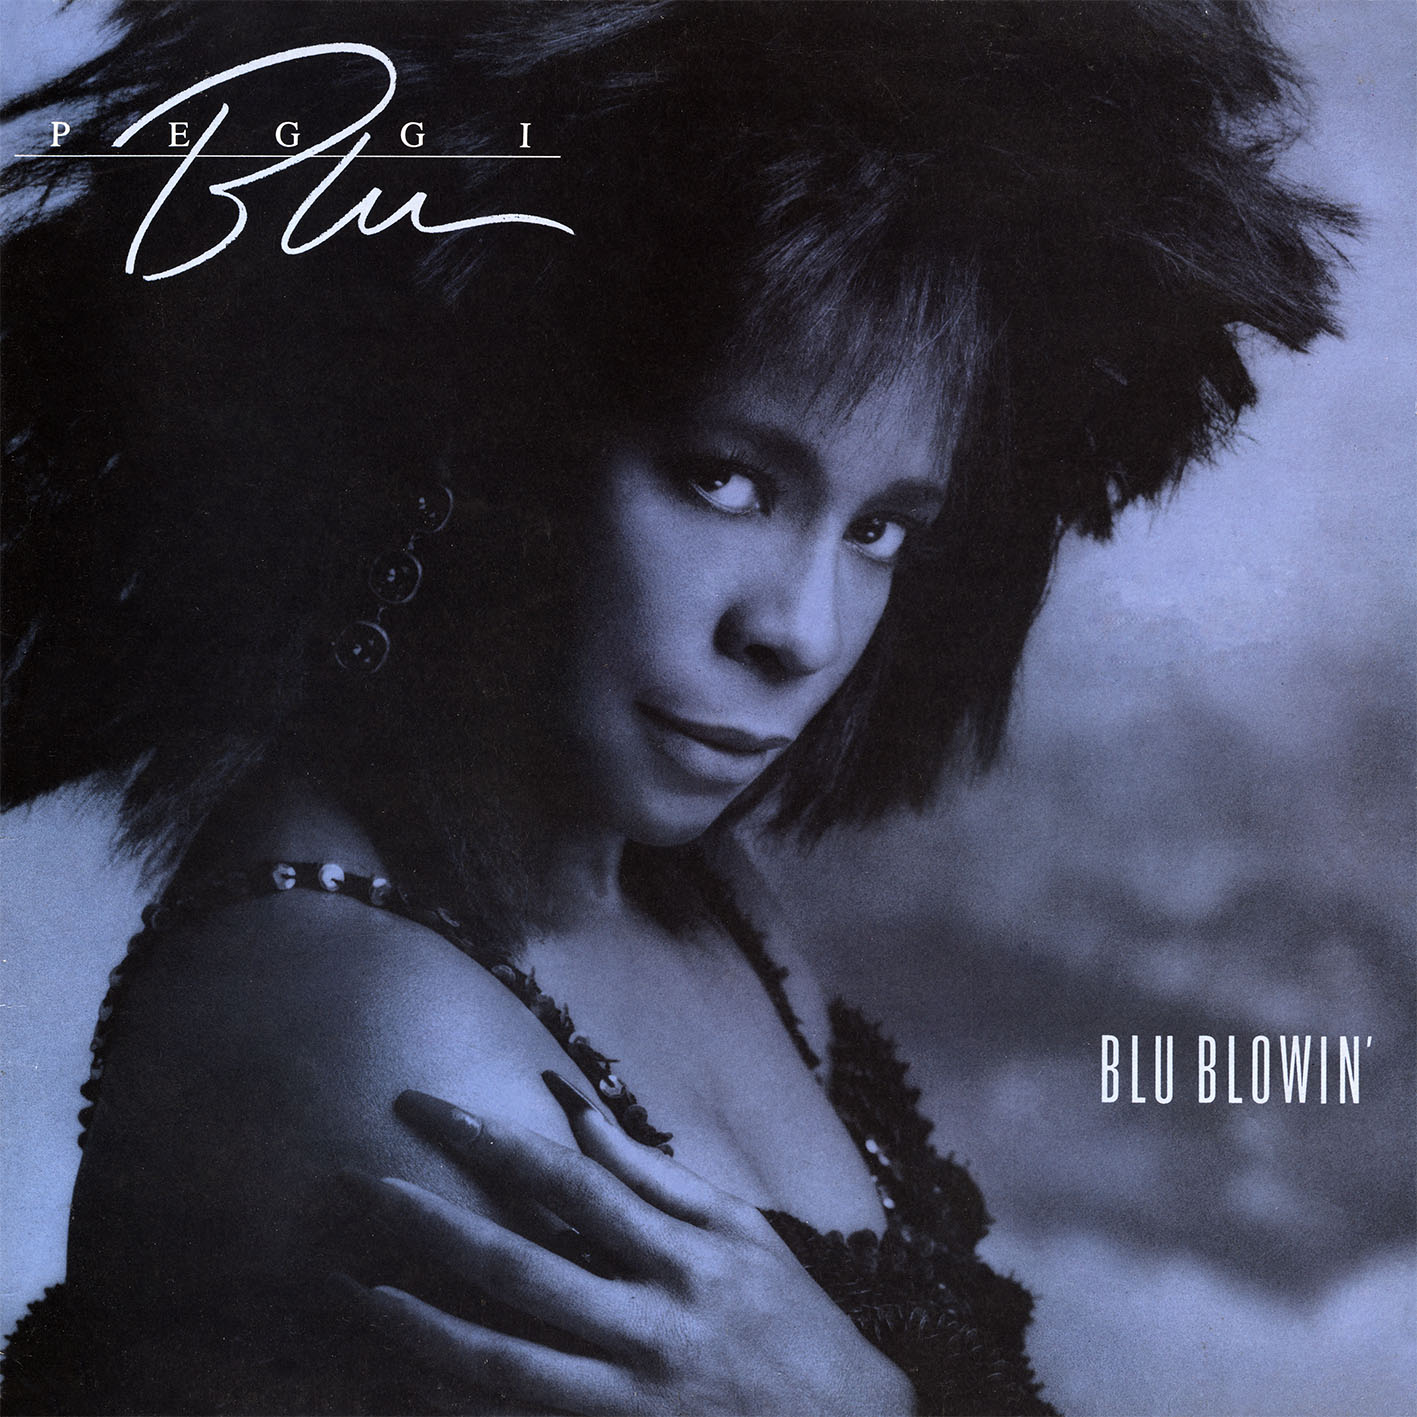 Peggi Blu/BLUE BLOWIN (1987) CD